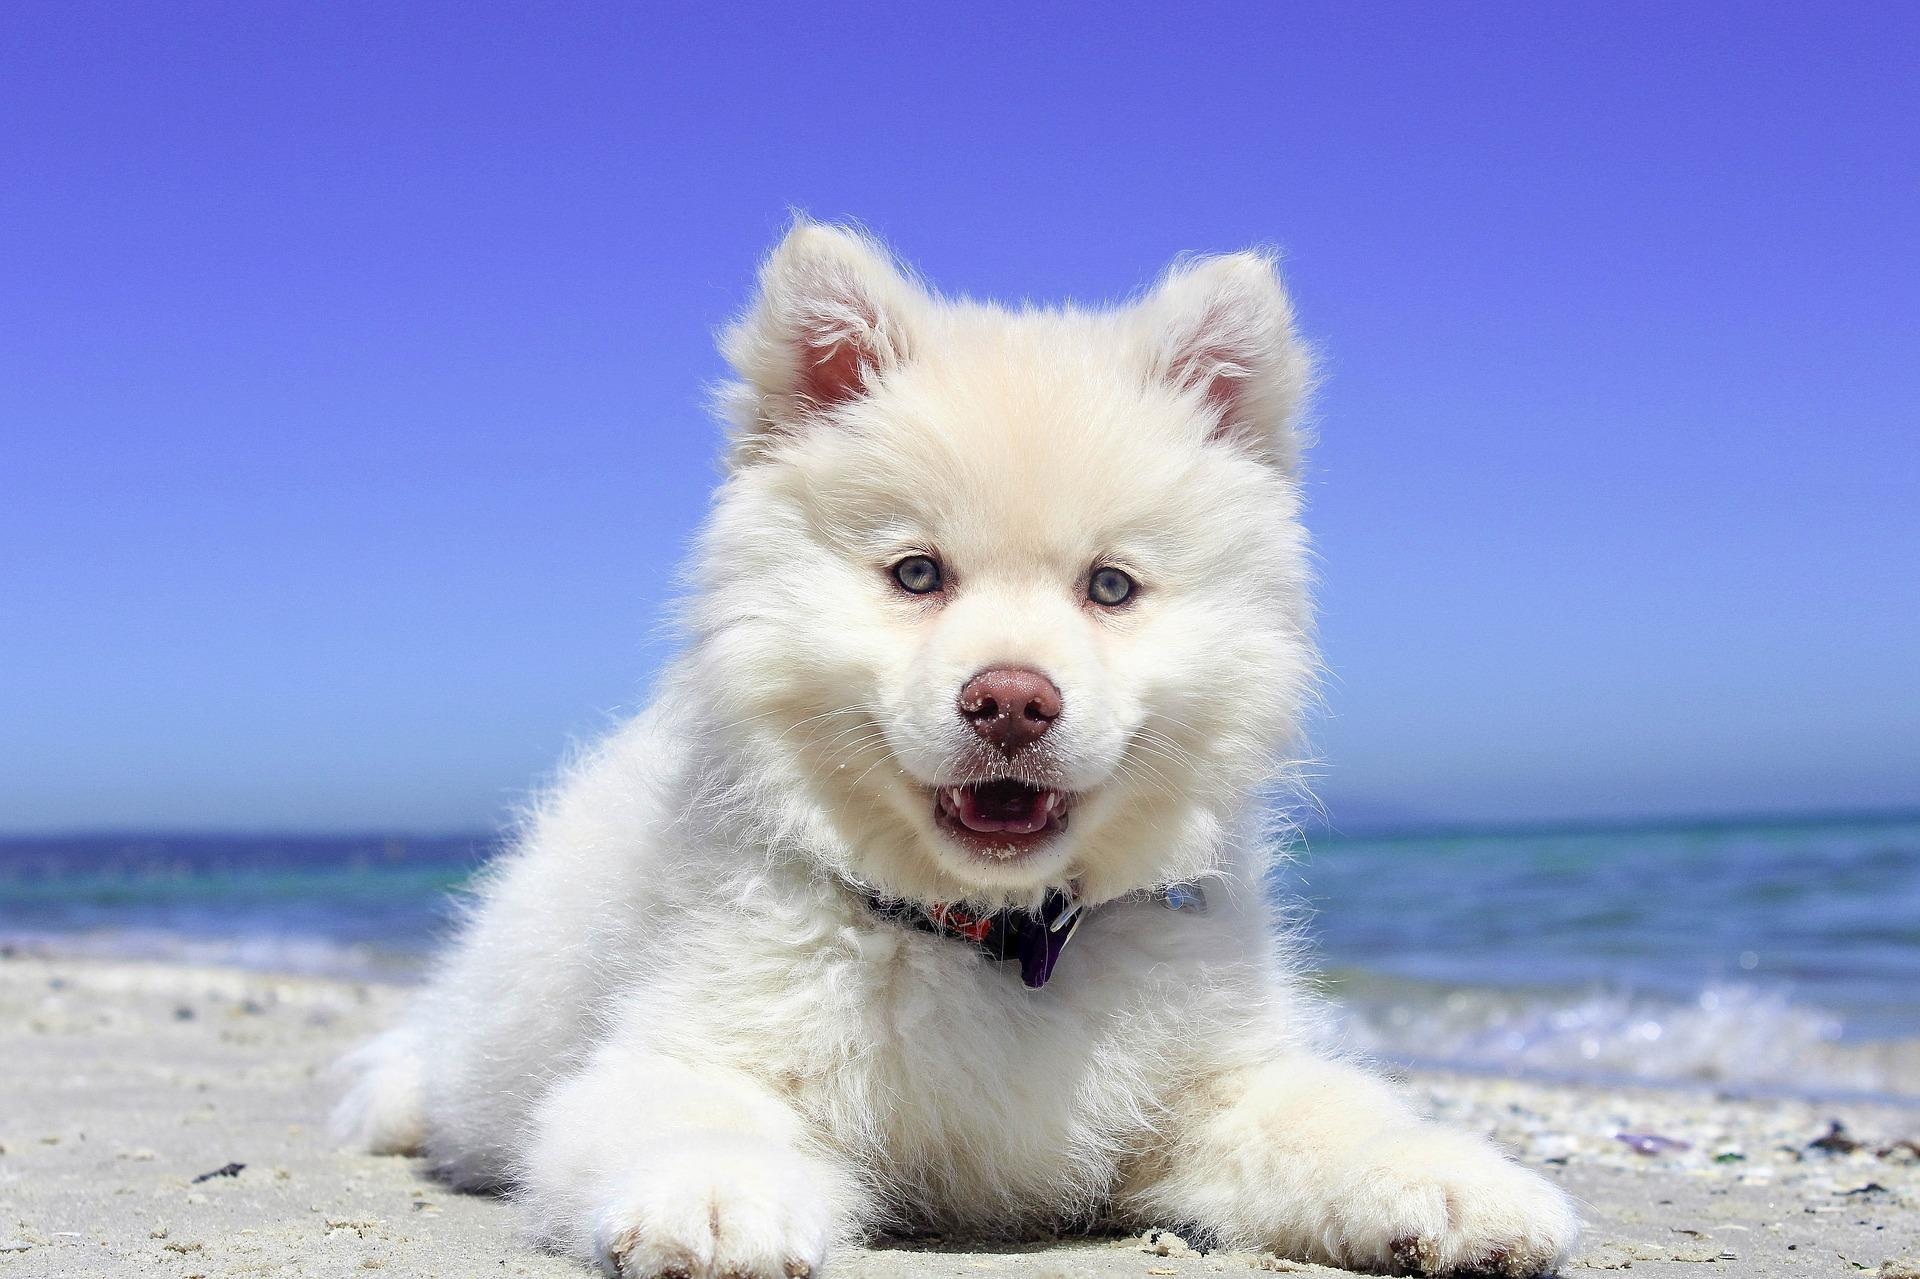 Cute Dog Wallpaper Hd For Android Apk Download